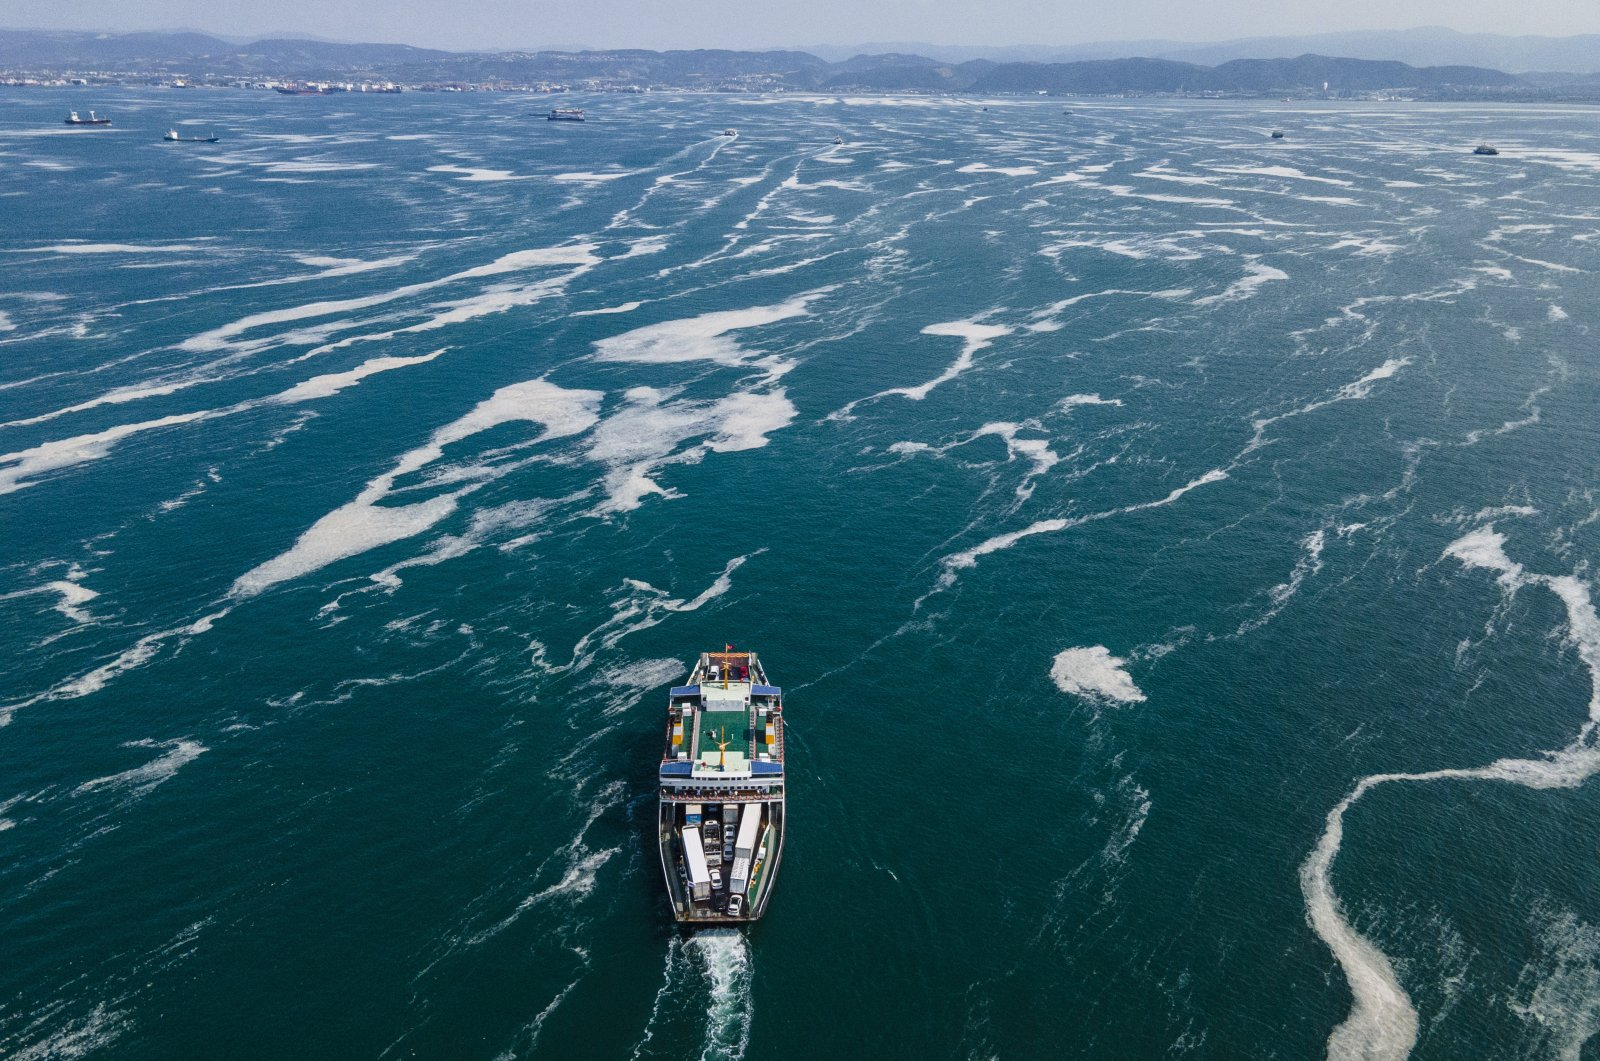 A ship sails through patches of sea snot near Kocaeli, east of Istanbul, Turkey, June 12, 2021. (AP Photo)